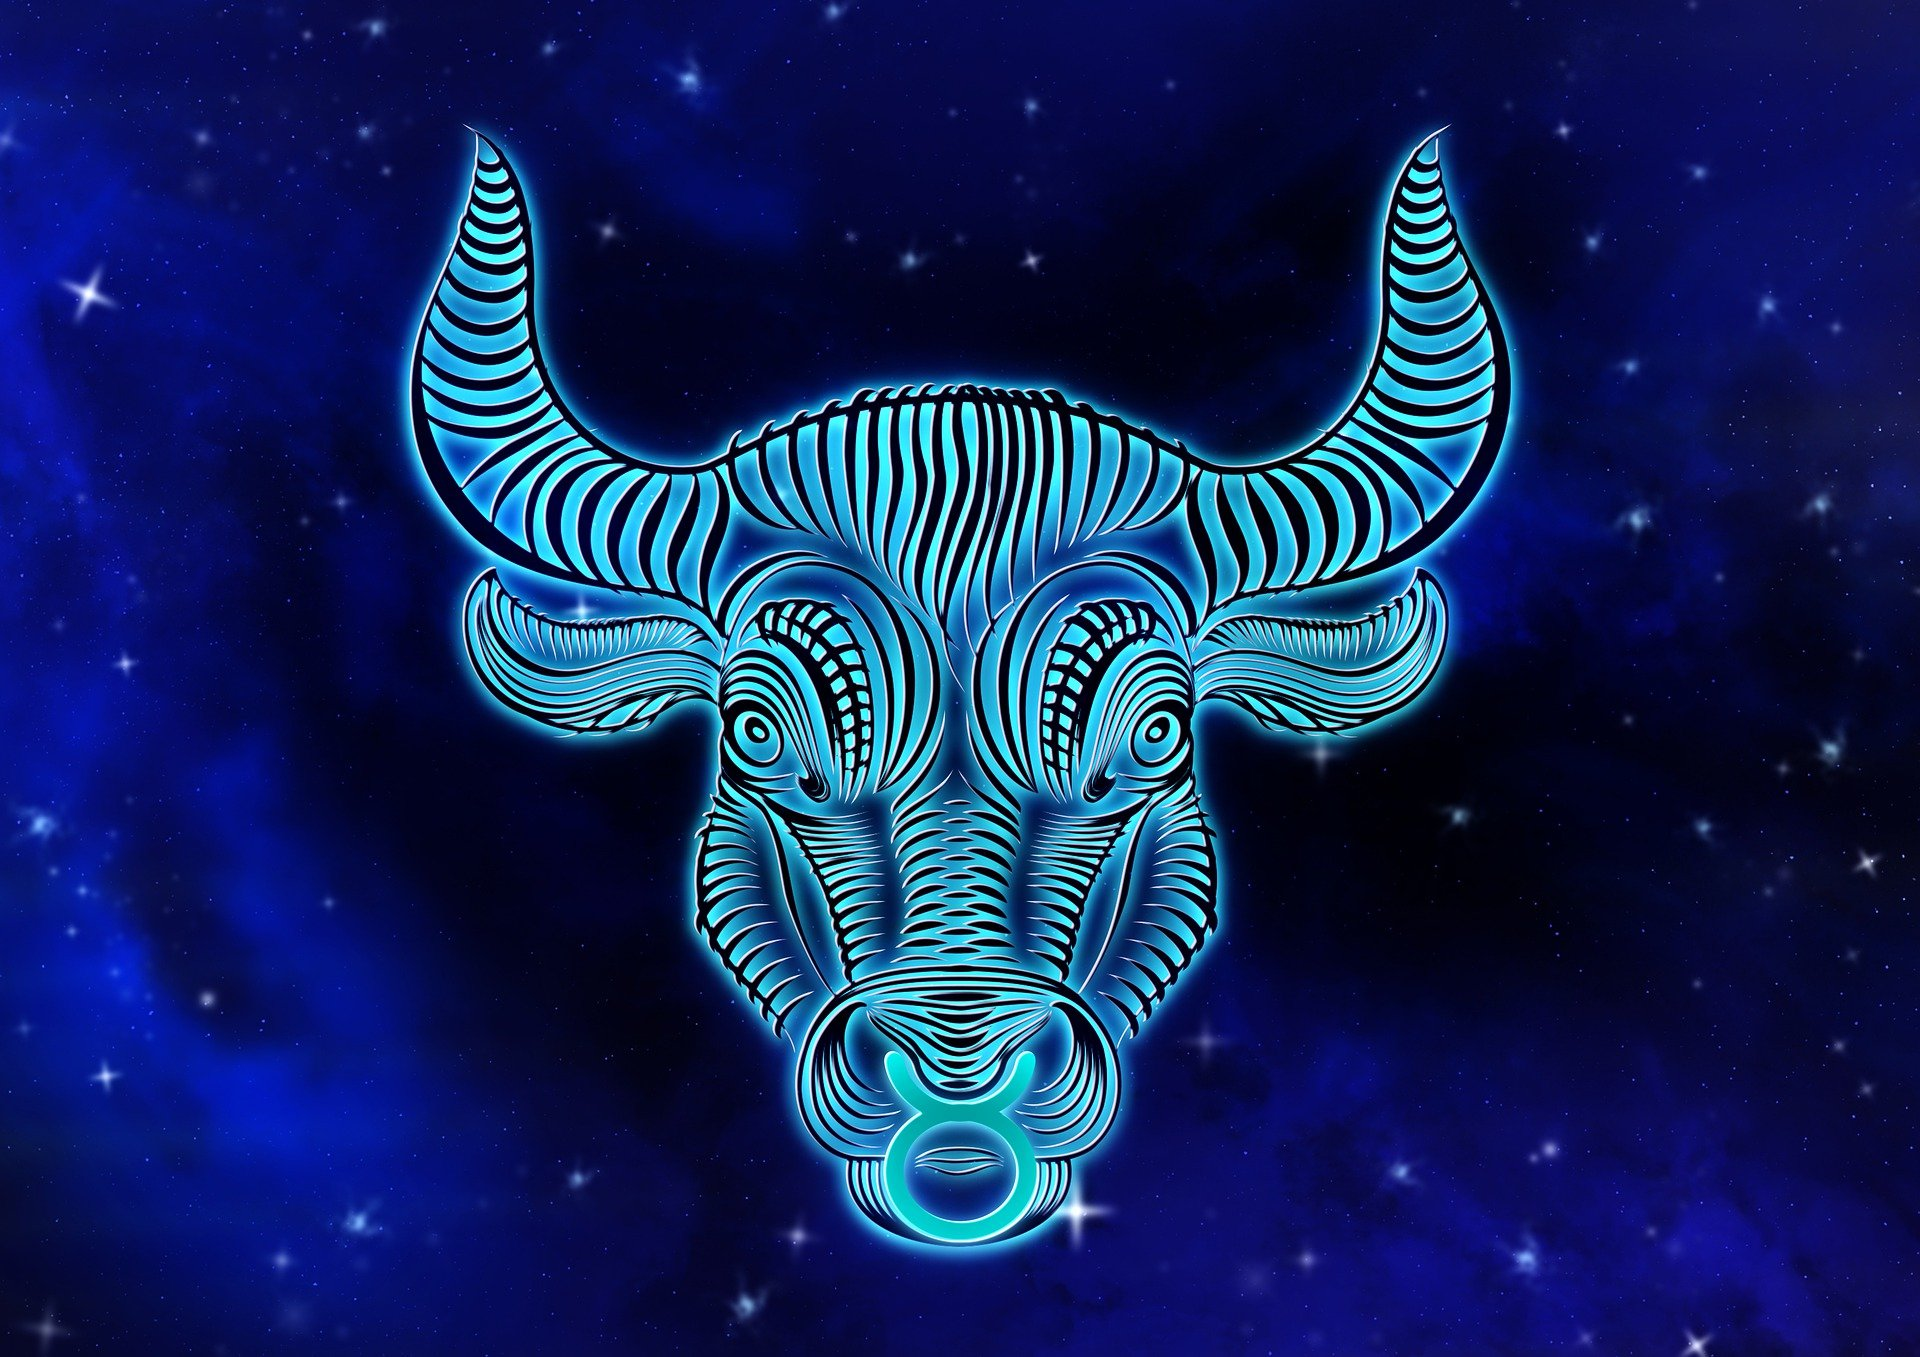 Pictured - A depiction of a Taurus star sign | Source: Pixabay